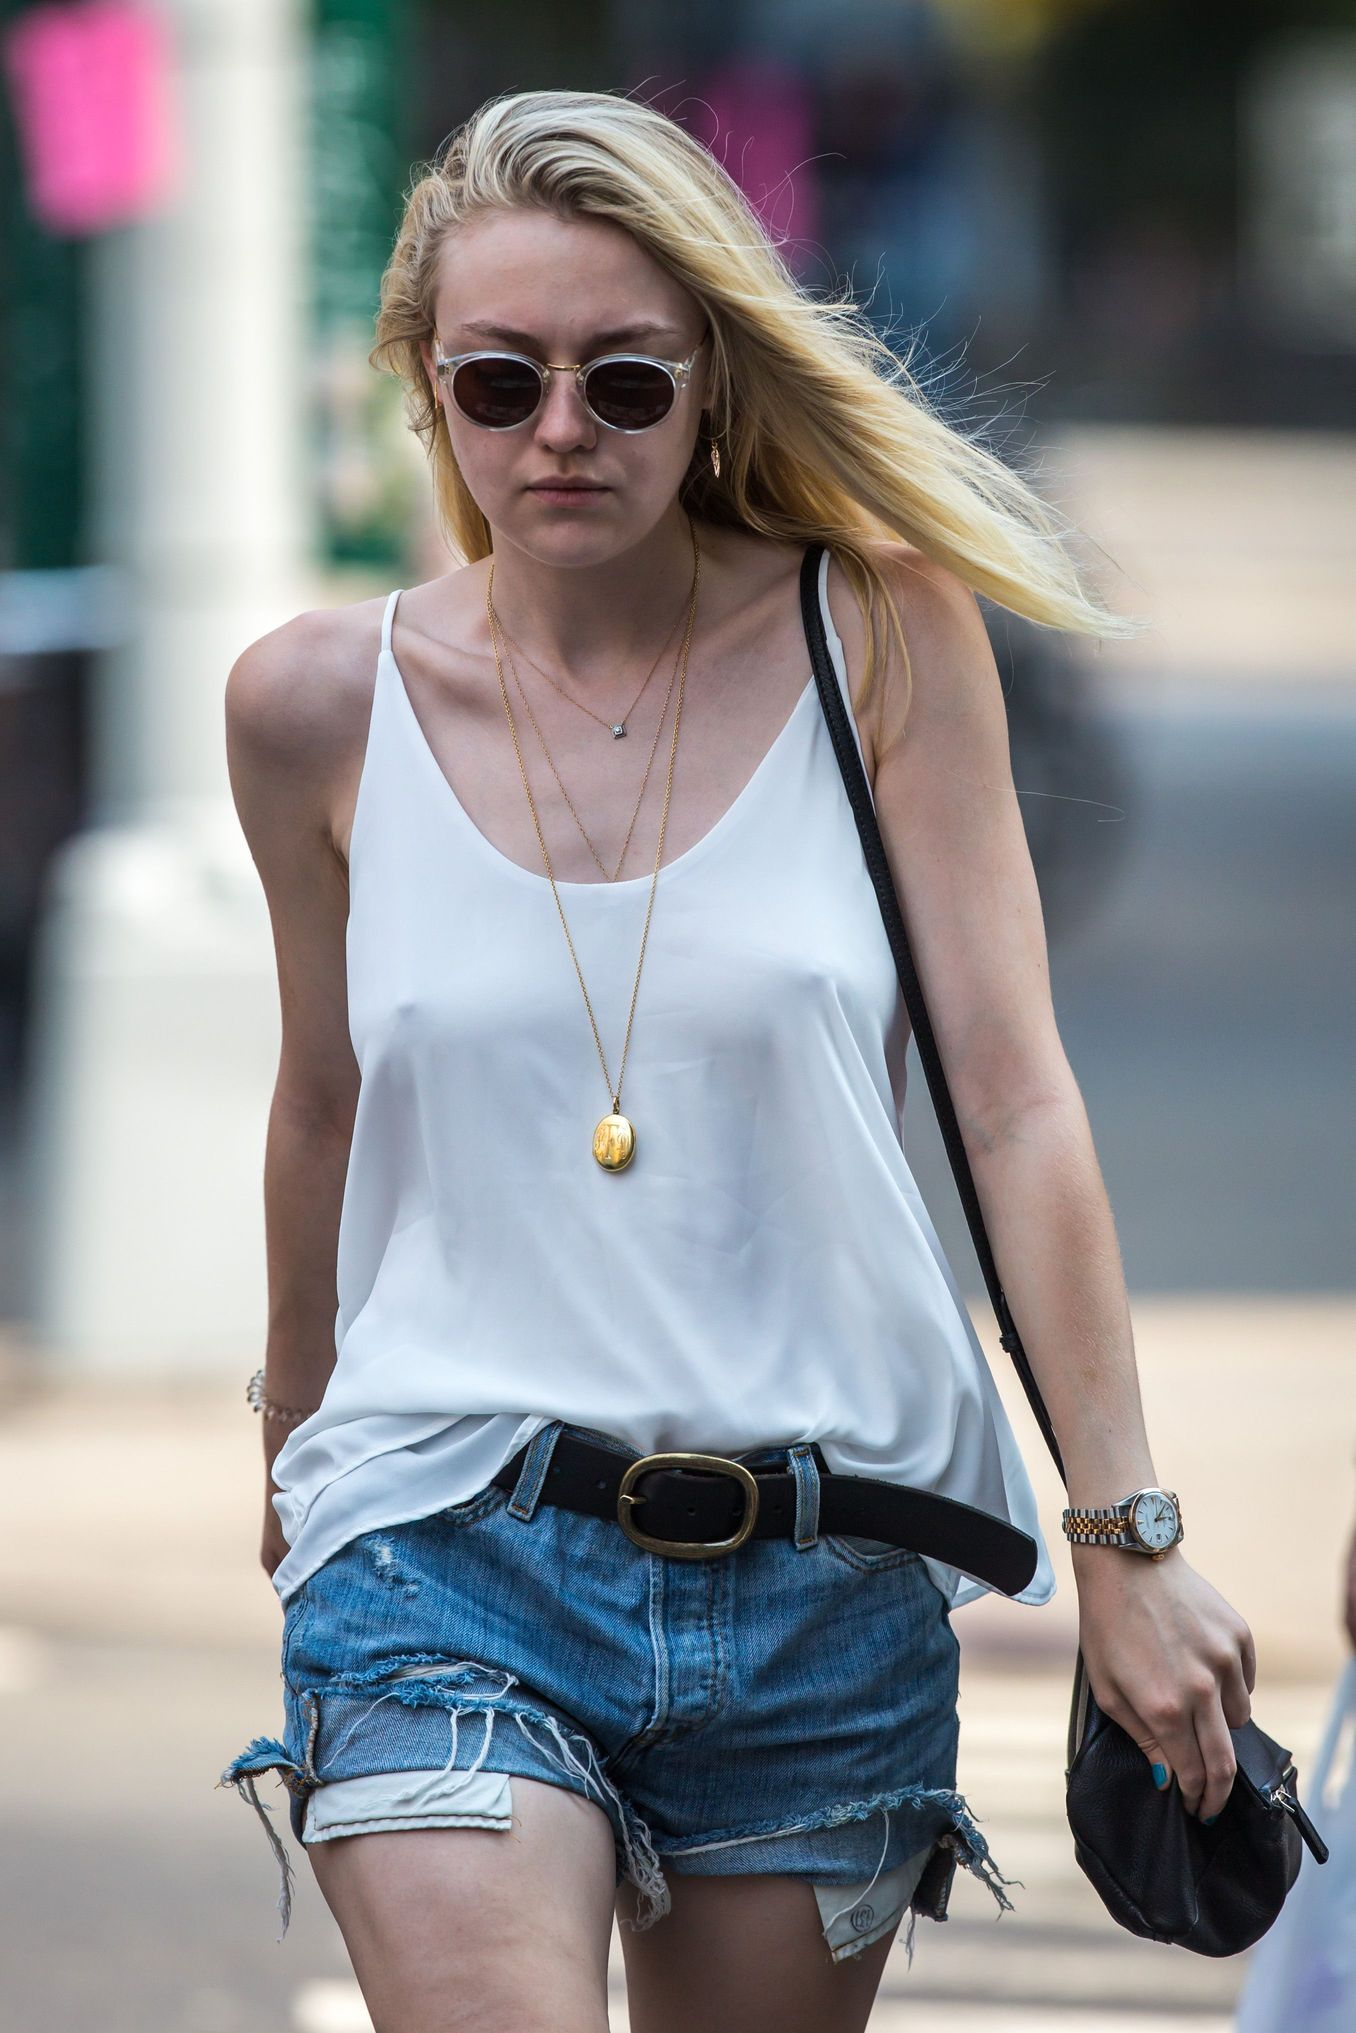 Dakota Fanning Braless Ph...